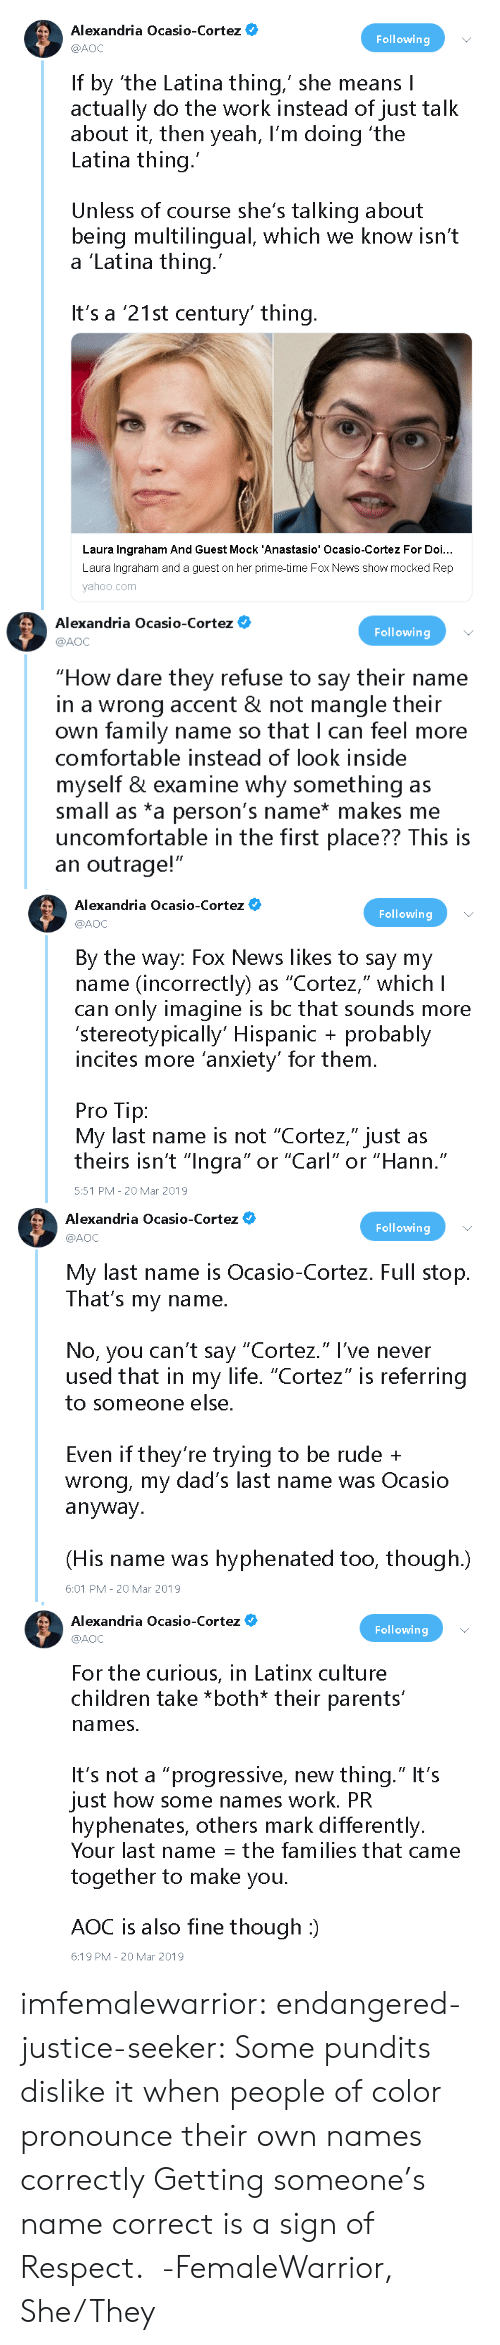 "21st century: Alexandria Ocasio-Cortez  @AOC  Following  If by 'the Latina thing,' she means I  actually do the work instead of just talk  about it, then yeah, I'm doing 'the  Latina thing.  Unless of course she's talking about  being multilingual, which we know isn't  a 'Latina thing  It's a '21st century' thing  Laura Ingraham And Guest Mock 'Anastasio' Ocasio-Cortez For Doi...  Laura Ingraham and a guest on her prime-time Fox News show mocked Rep  yahoo.com   Alexandria Ocasio-Cortez O  @AOC  Following  ""How dare they refuse to say their name  in a wrong accent & not mangle their  own family name so that I can feel more  comfortable instead of look inside  myself & examine why something as  small as *a person's name* makes me  uncomfortable in the first place?? This is  an outrage!""   Alexandria Ocasio-Cortez*  Following  @AOC  By the way: Fox News likes to say my  name (incorrectly) as ""Cortez,"" which lI  can only imagine is bc that sounds more  'stereotypically' Hispanic probably  incites more anxiety' for them  Pro Tip:  My last name is not ""Cortez,"" just as  theirs isn't ""Inara"" or ""Carl"" or ""Hann  .""  5:51 PM -20 Mar 2019   Alexandria Ocasio-Cortez  Following  @AOC  My last name is Ocasio-Cortez. Full stop.  That's my name.  No, you can't say ""Cortez."" l've never  used that in my life. ""Cortez"" is referring  to someone else  Even if they're trying to be rude +  wrong, my dad's last name was Ocasio  anyway.  (His name was hyphenated too, though.)  6:01 PM 20 Mar 2019   Alexandria Ocasio-Cortez  @AOC  Following  For the curious, in Latinx culture  children take *both* their parents'  names.  It's not a ""progressive, new thing."" It's  just how some names work. PR  hyphenates, others mark differently.  Your last name: the families that came  together to make you.  AOC is also fine though :)  6:19 PM-20 Mar 2019 imfemalewarrior:  endangered-justice-seeker:  Some pundits dislike it when people of color pronounce their own names correctly   Getting someone's name correct is a sign of Respect.  -FemaleWarrior, She/They"